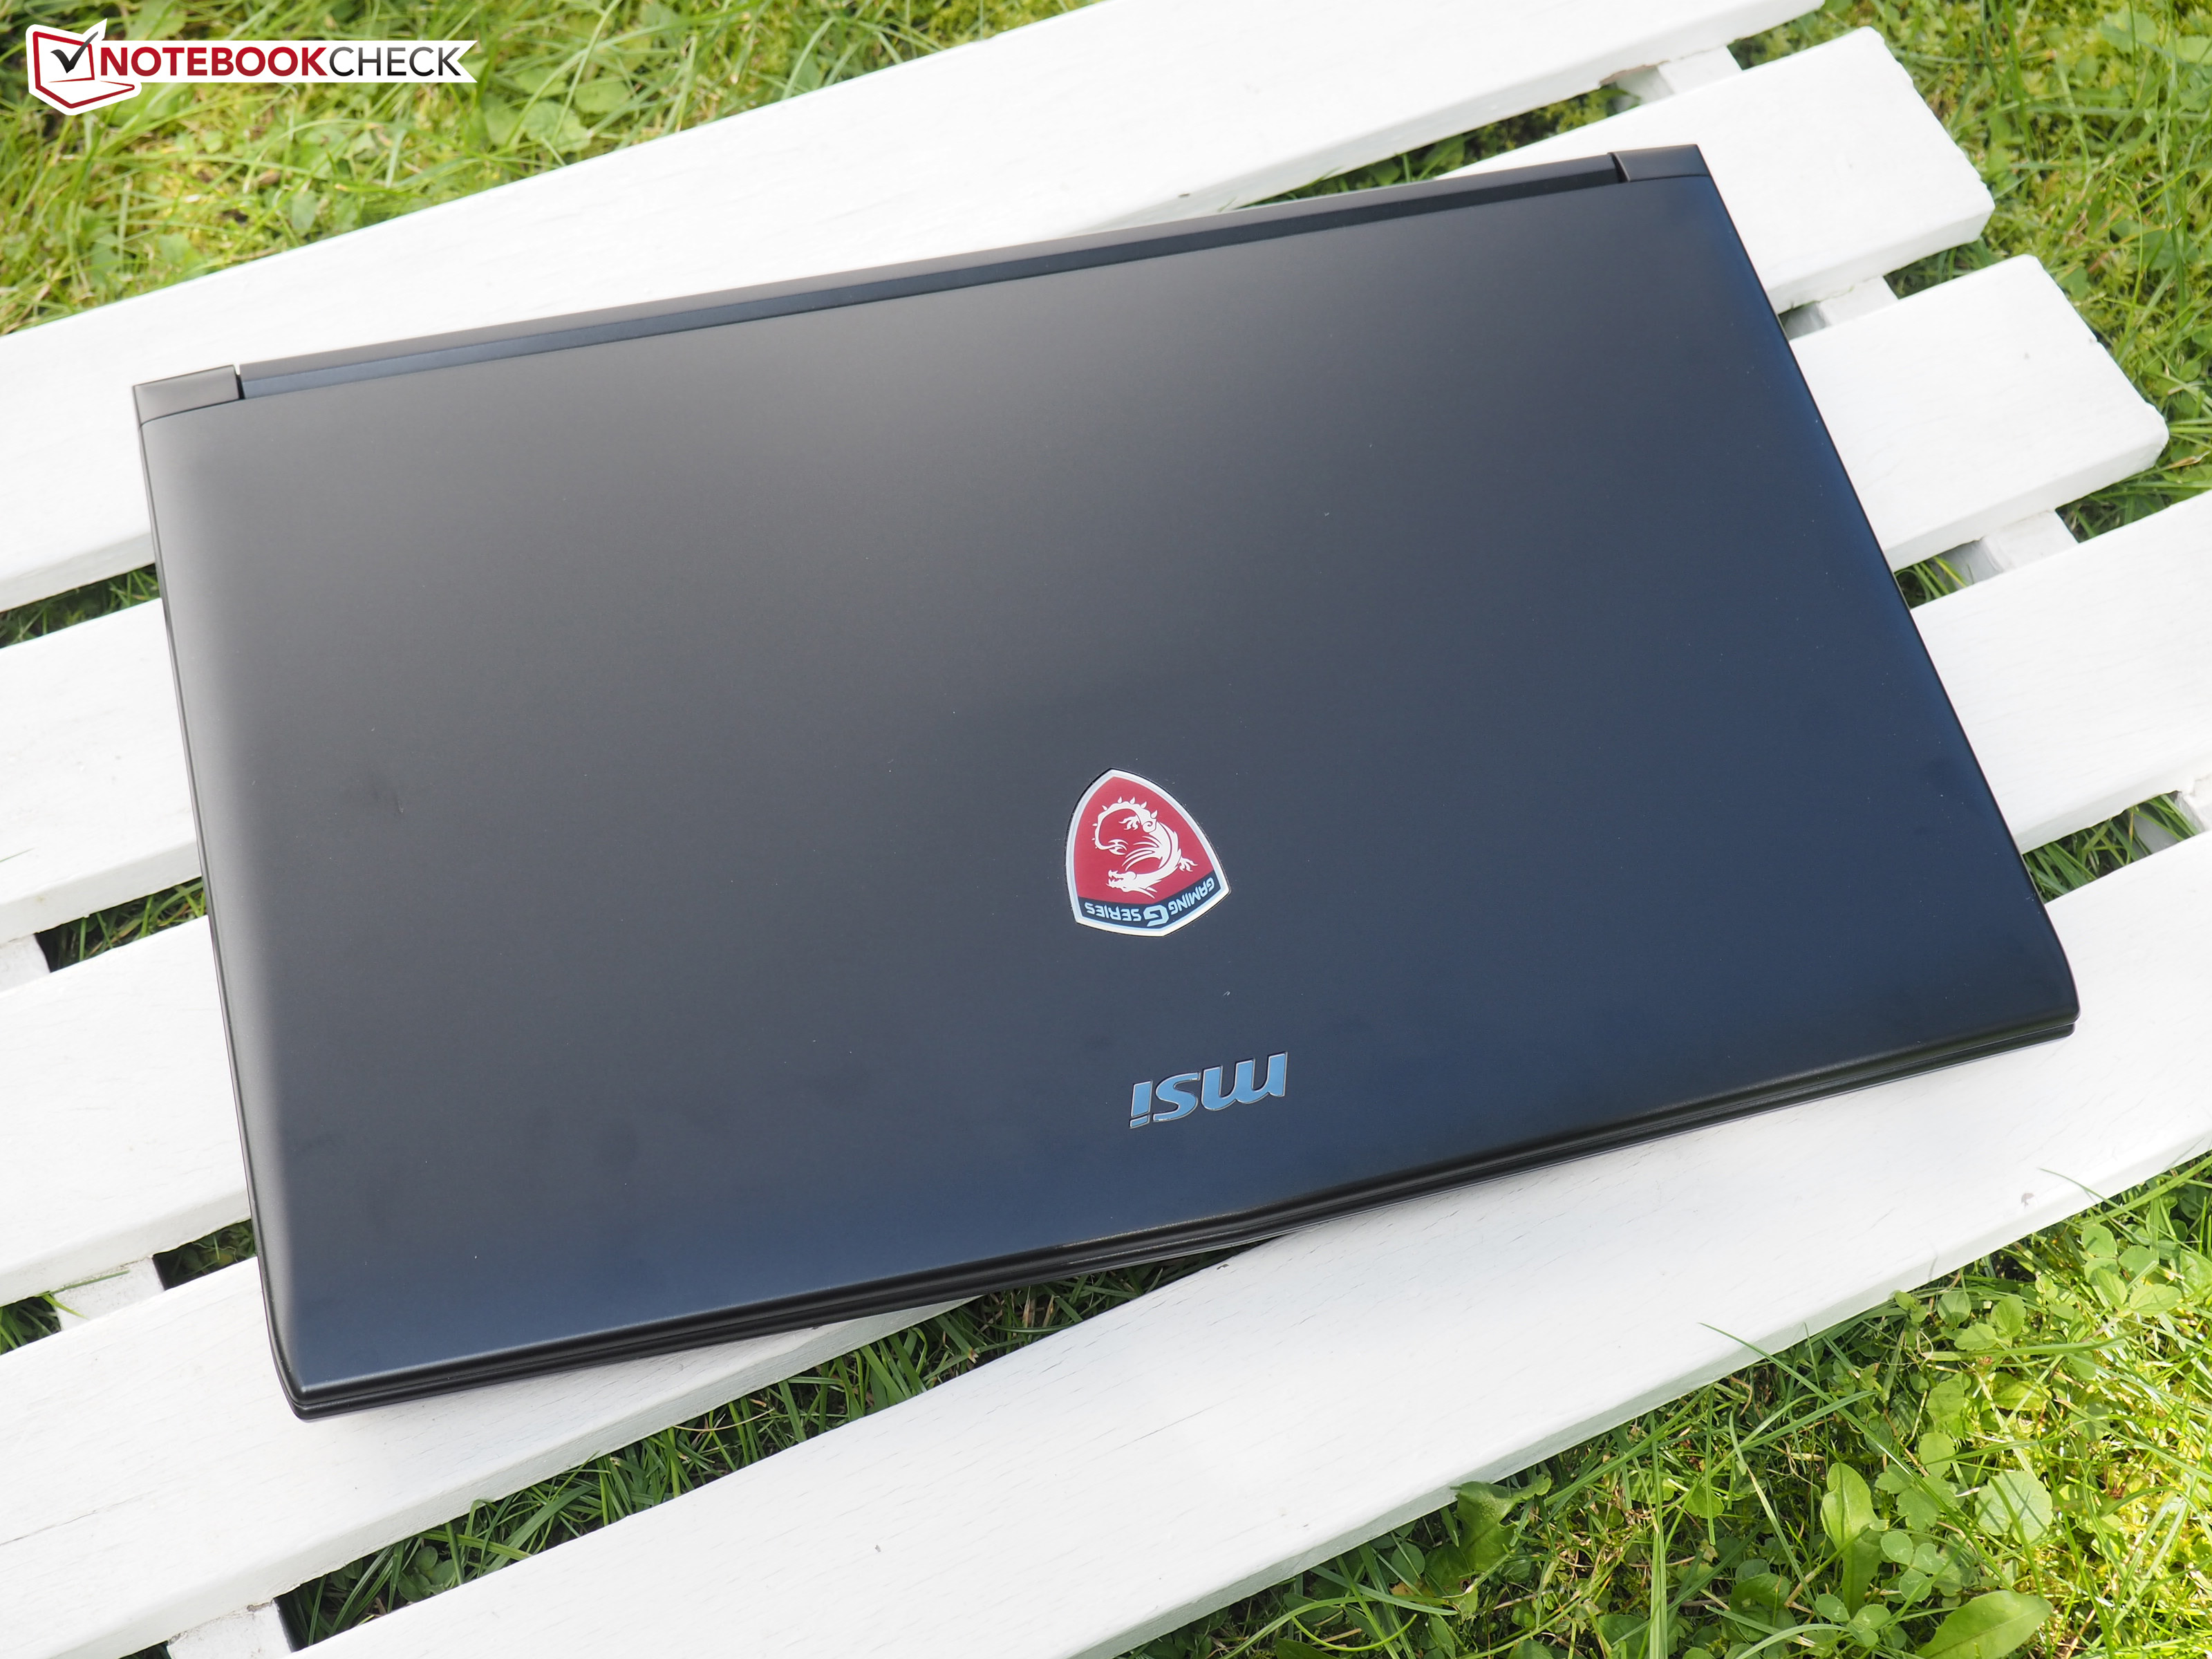 Msi Gl62 6qf Notebook Review Reviews 7qf Entry Gaming Full Resolution